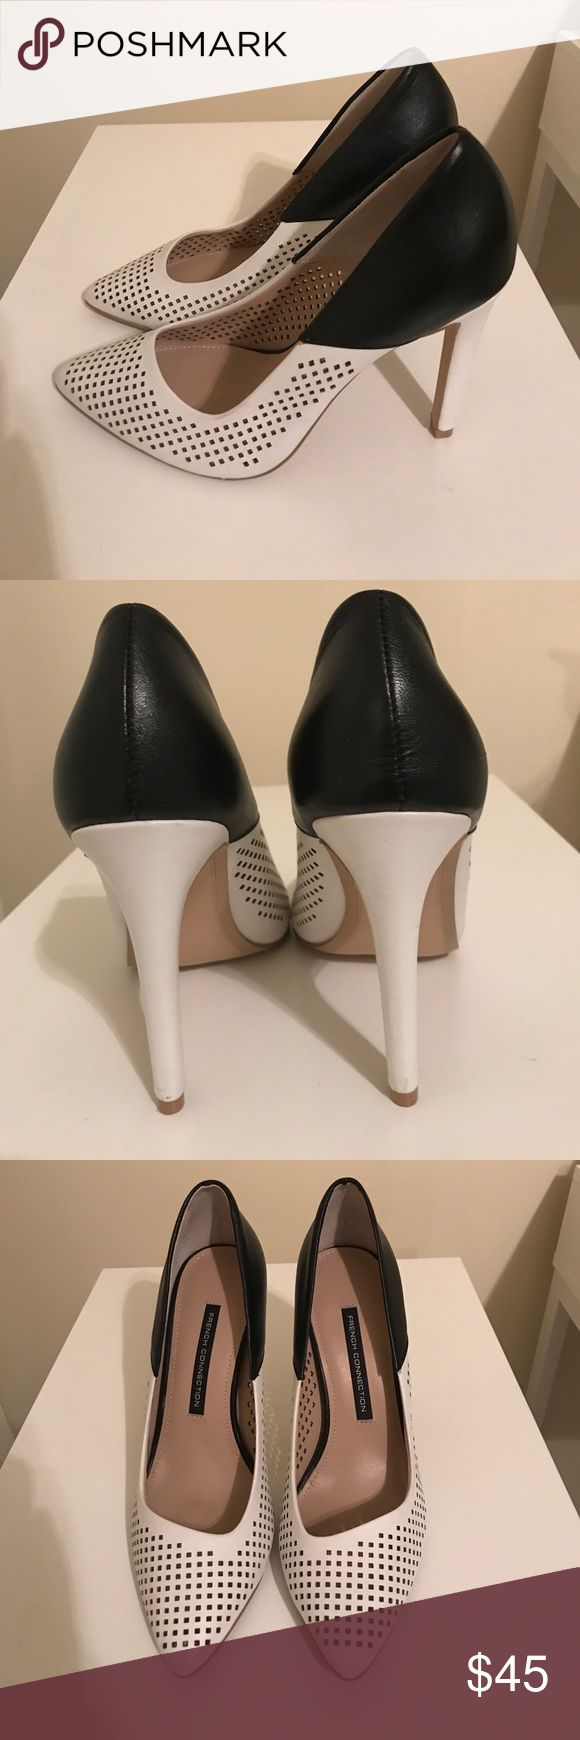 French Connection heels Stunning classy black and white closed toe heels in excellent used condition.very minor marks on heels. Leather upper with synthetic lining and sole.women's shoe size chart posted from brand as a reference guide. French Connection Shoes Heels